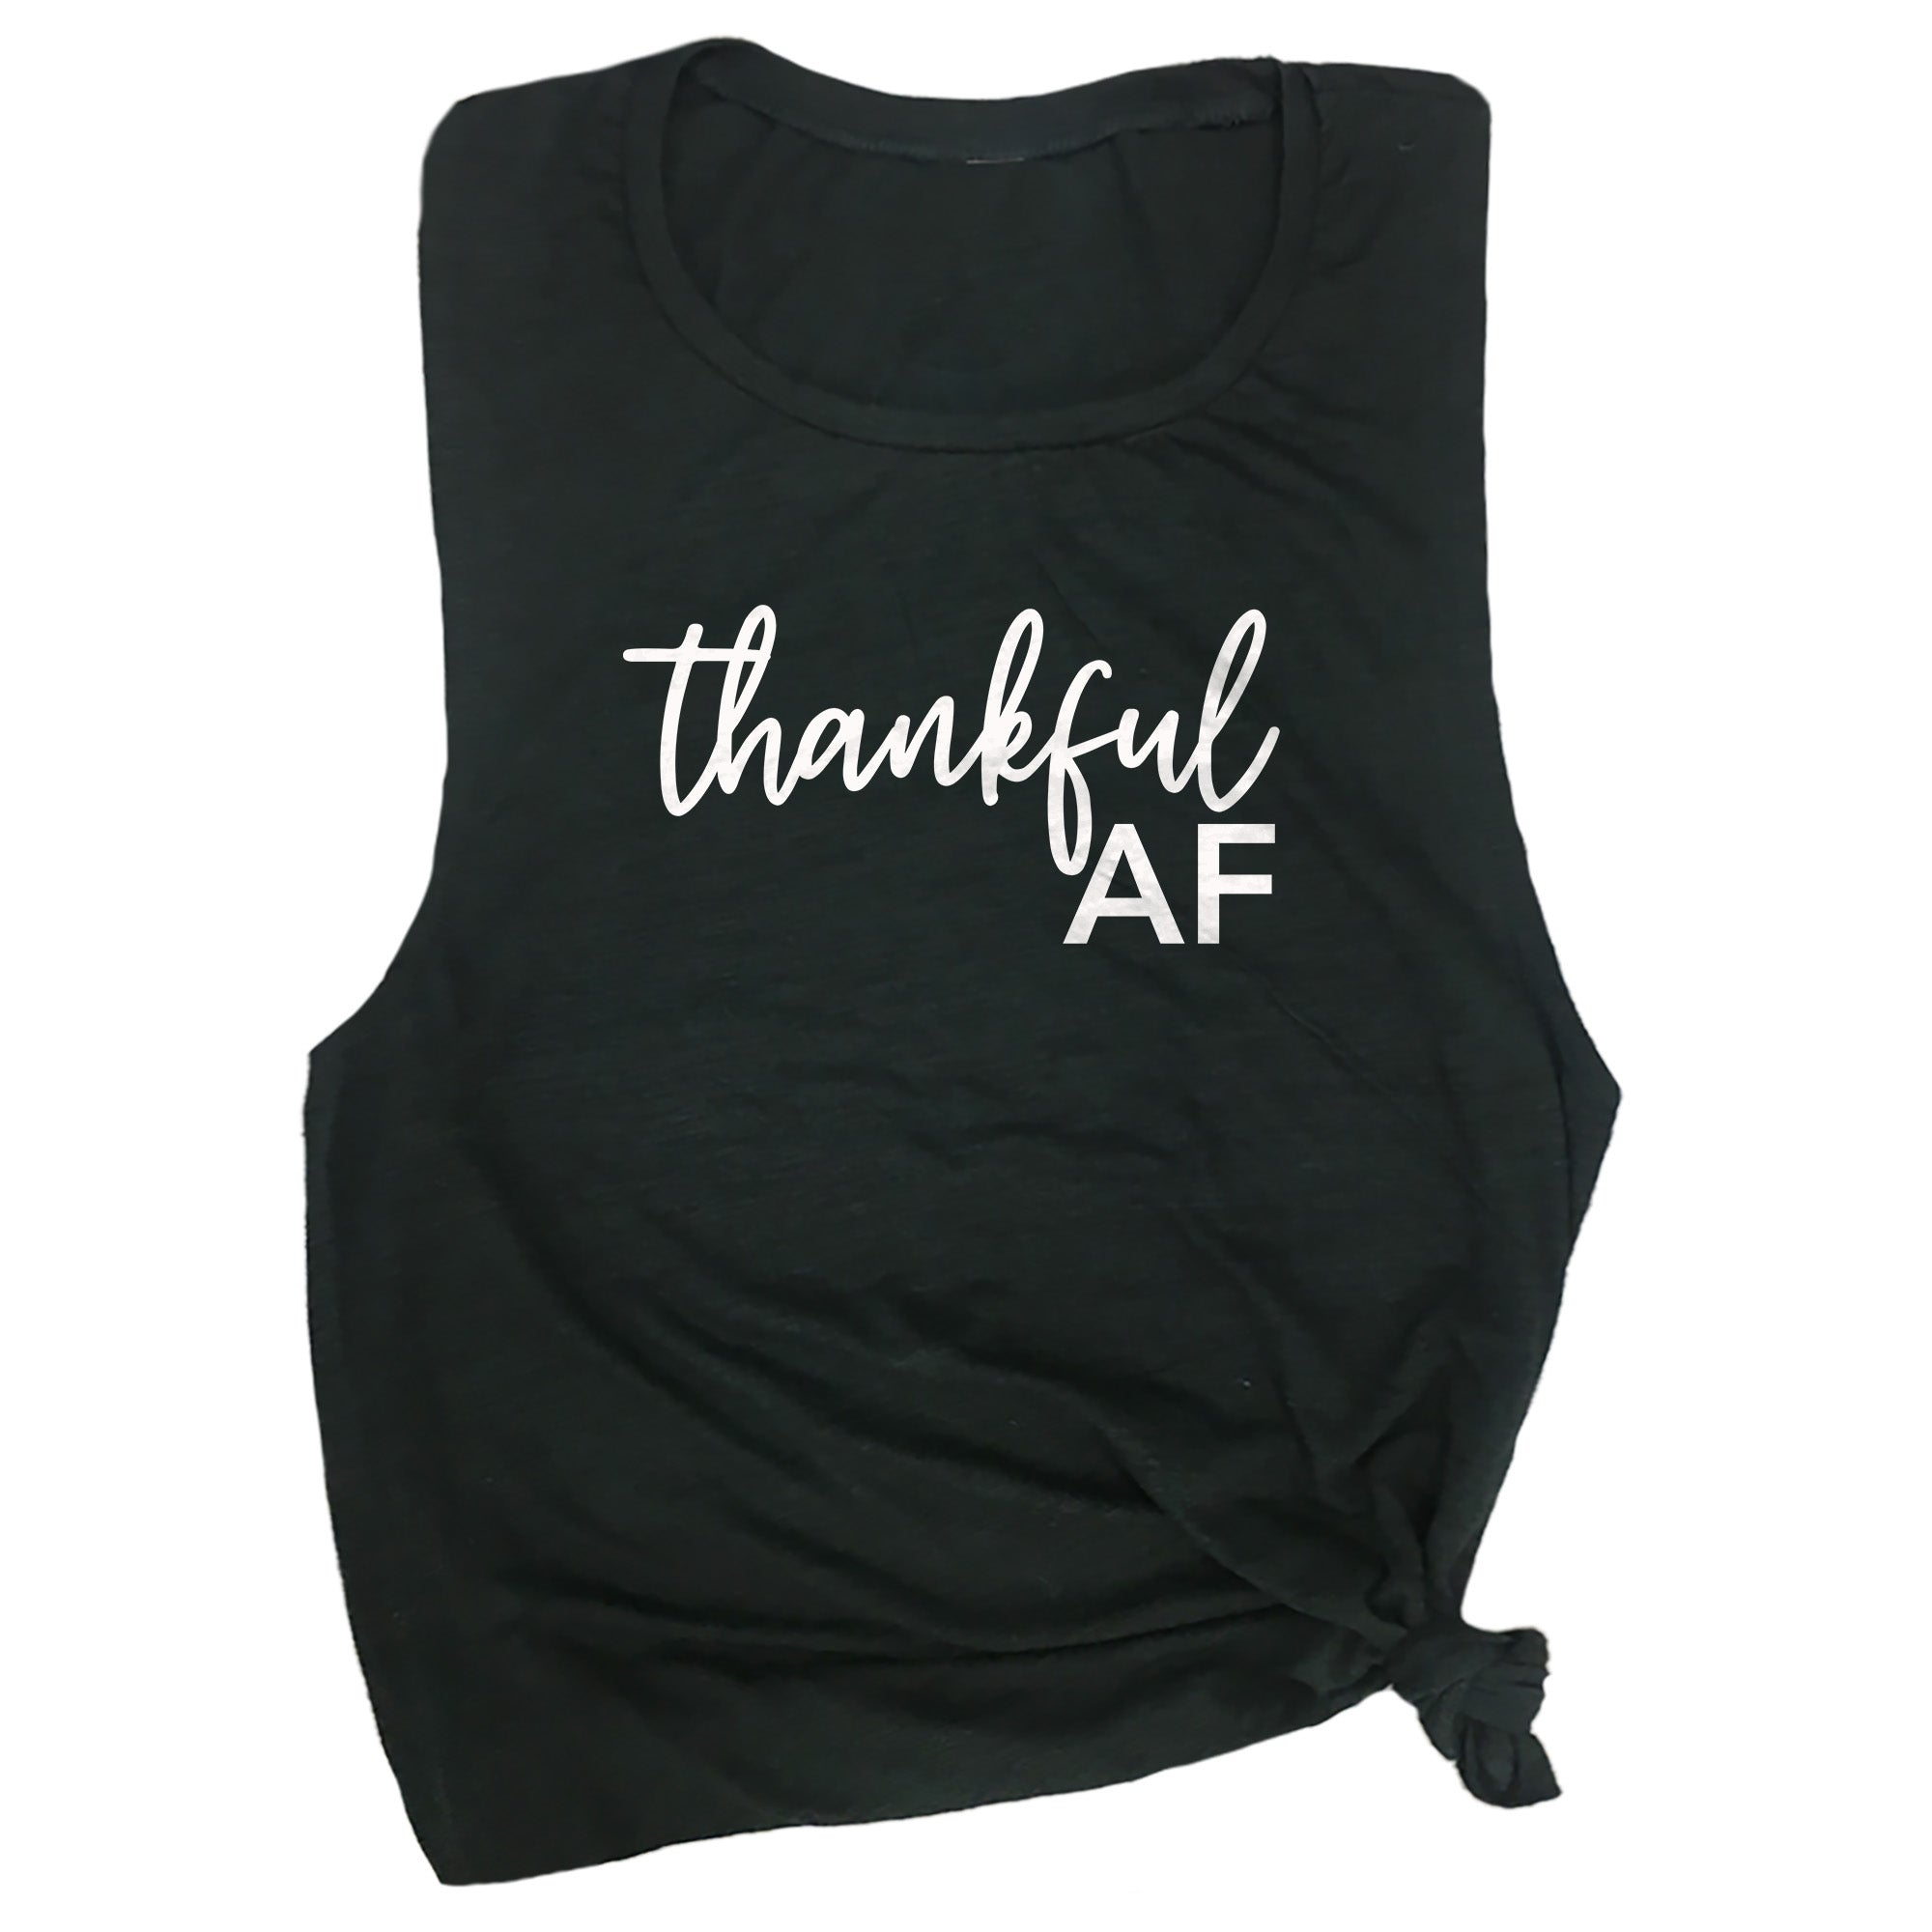 Thankful AF Muscle Tee